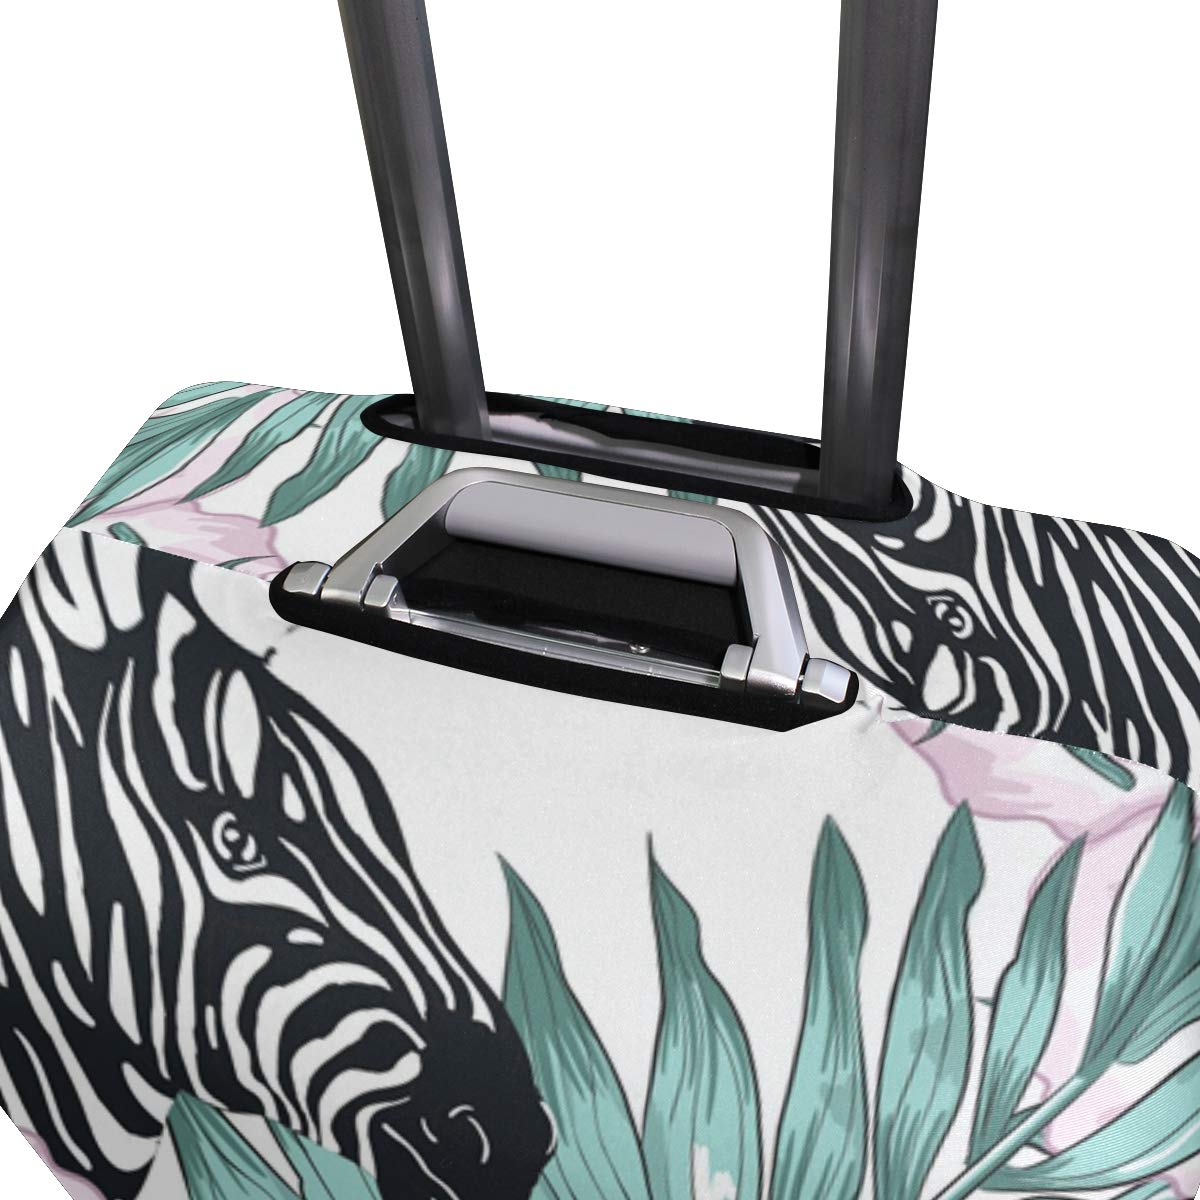 Tropical Palm Leaves Zebra Travel Luggage Cover Spandex Washable Suitcase Protective Cover Baggage Protector Fit 18-32 inch Suitcase